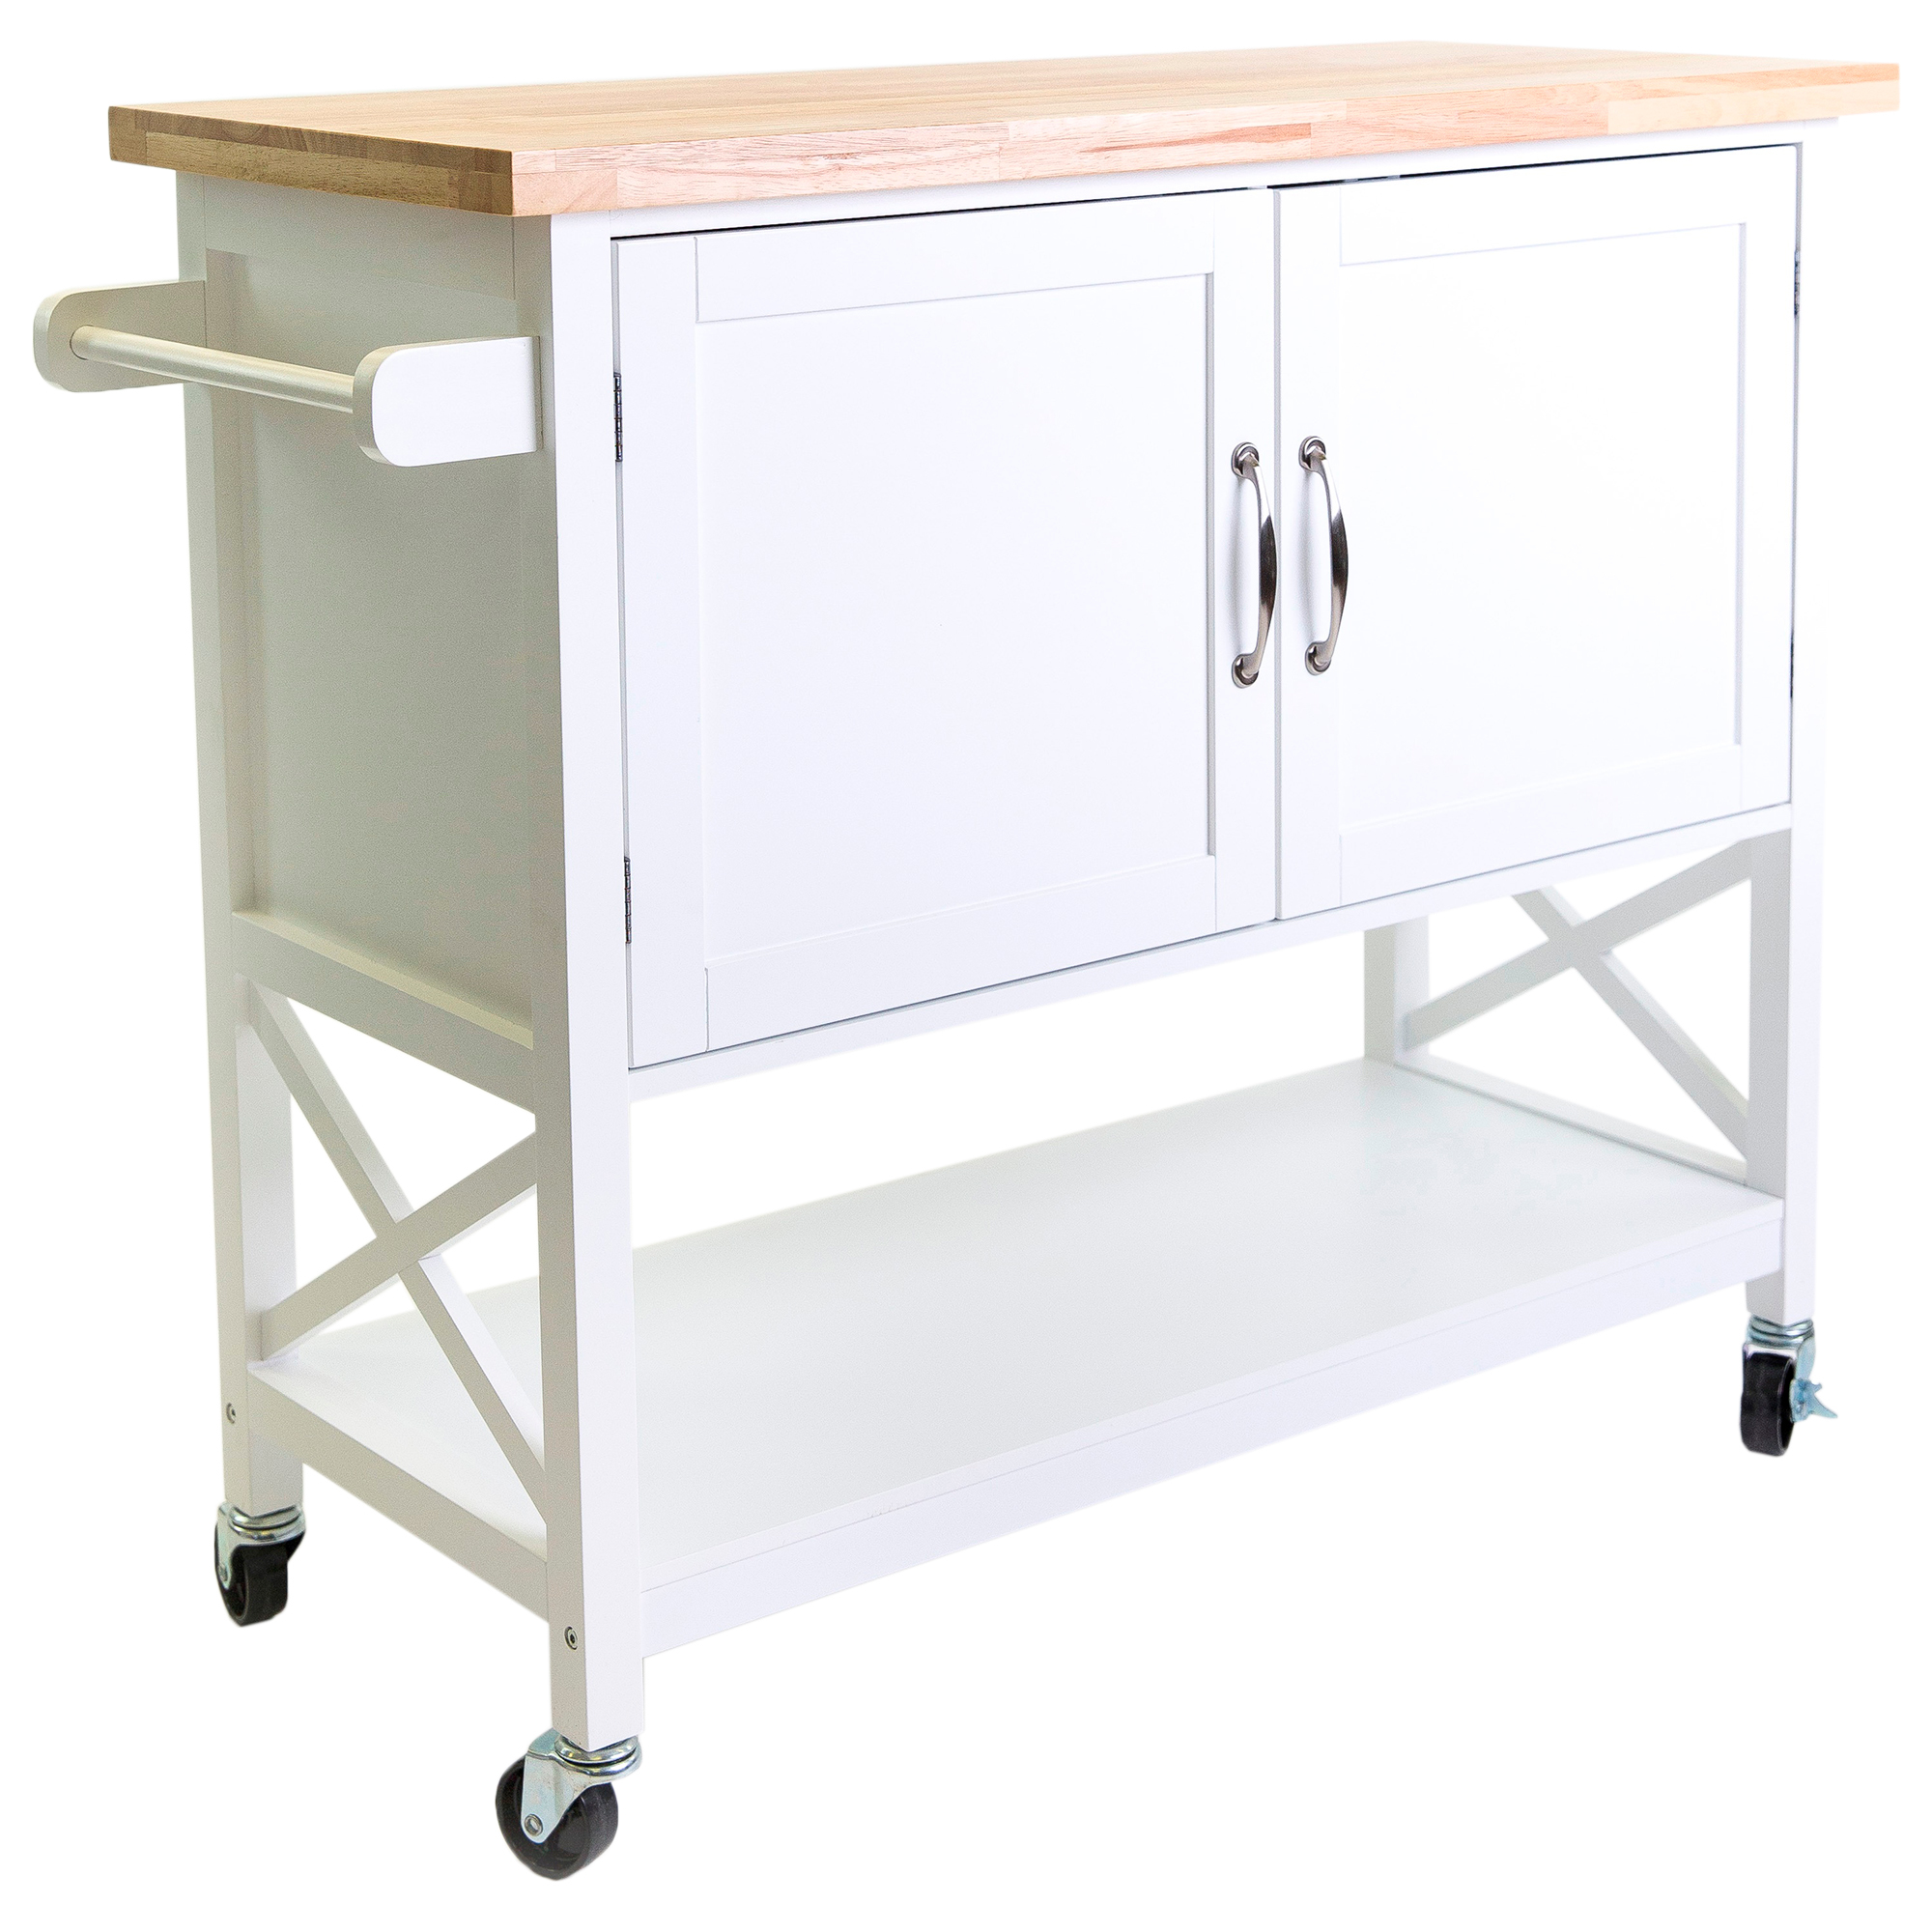 Crosley Roots Rack Industrial Kitchen Cart In Natural: Kitchen Carts House Furniture New Elwood Kitchen Trolley